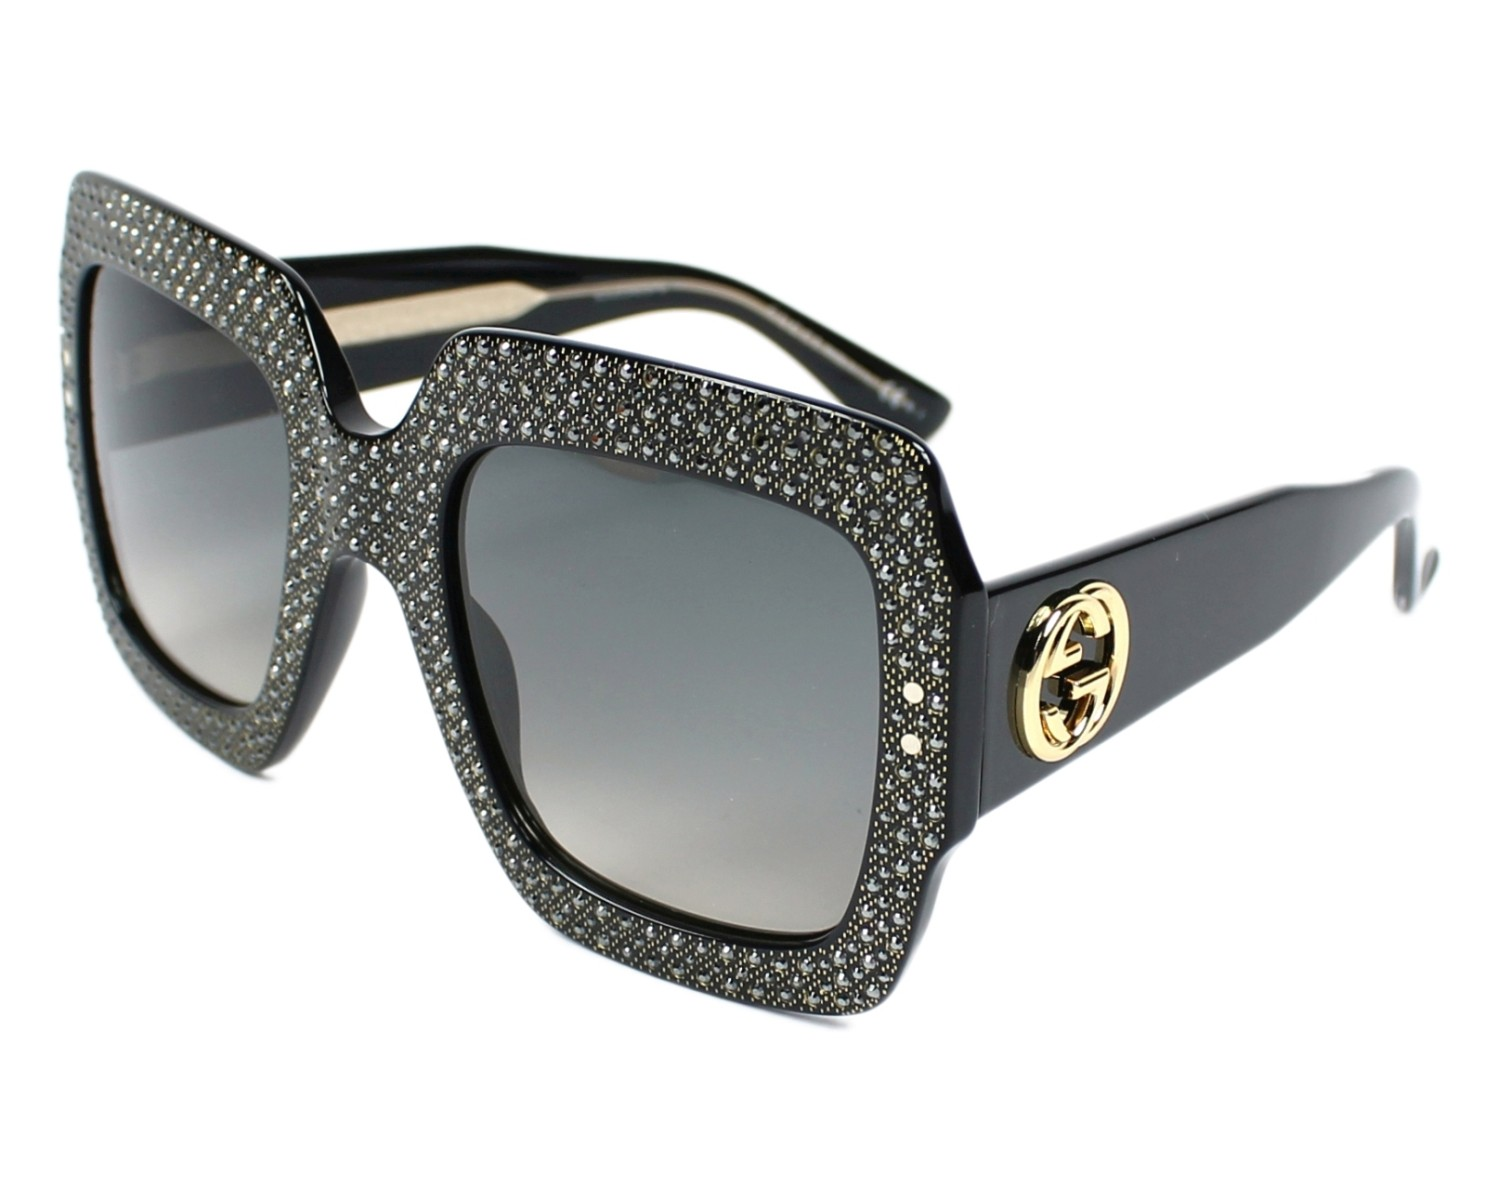 cf810f3e40876 thumbnail Sunglasses Gucci GG-3861-S Y6C DX - Black Crystal profile view